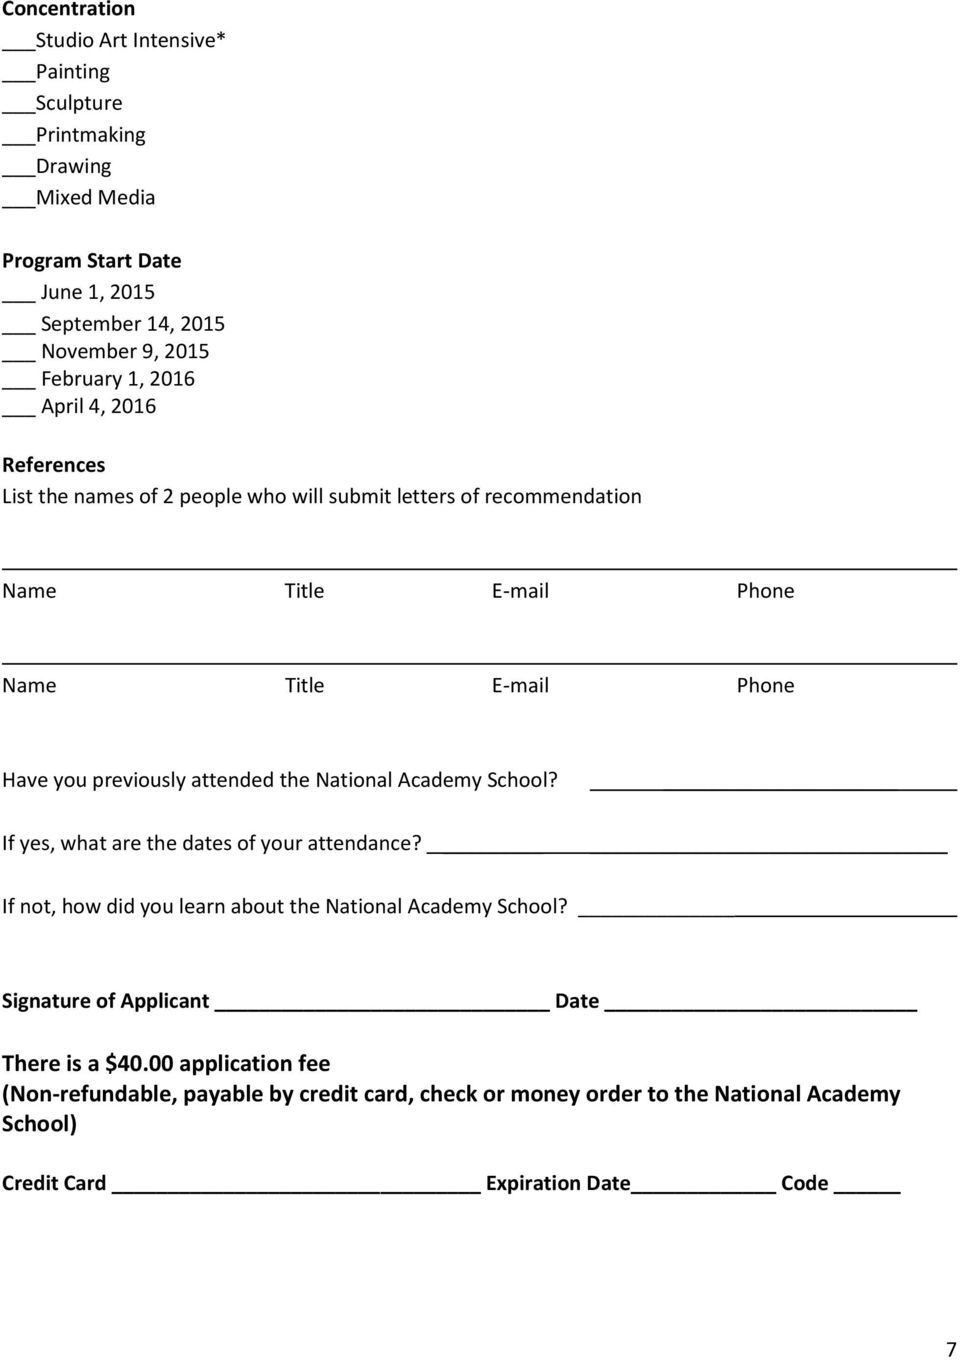 attended the National Academy School? If yes, what are the dates of your attendance? If not, how did you learn about the National Academy School?